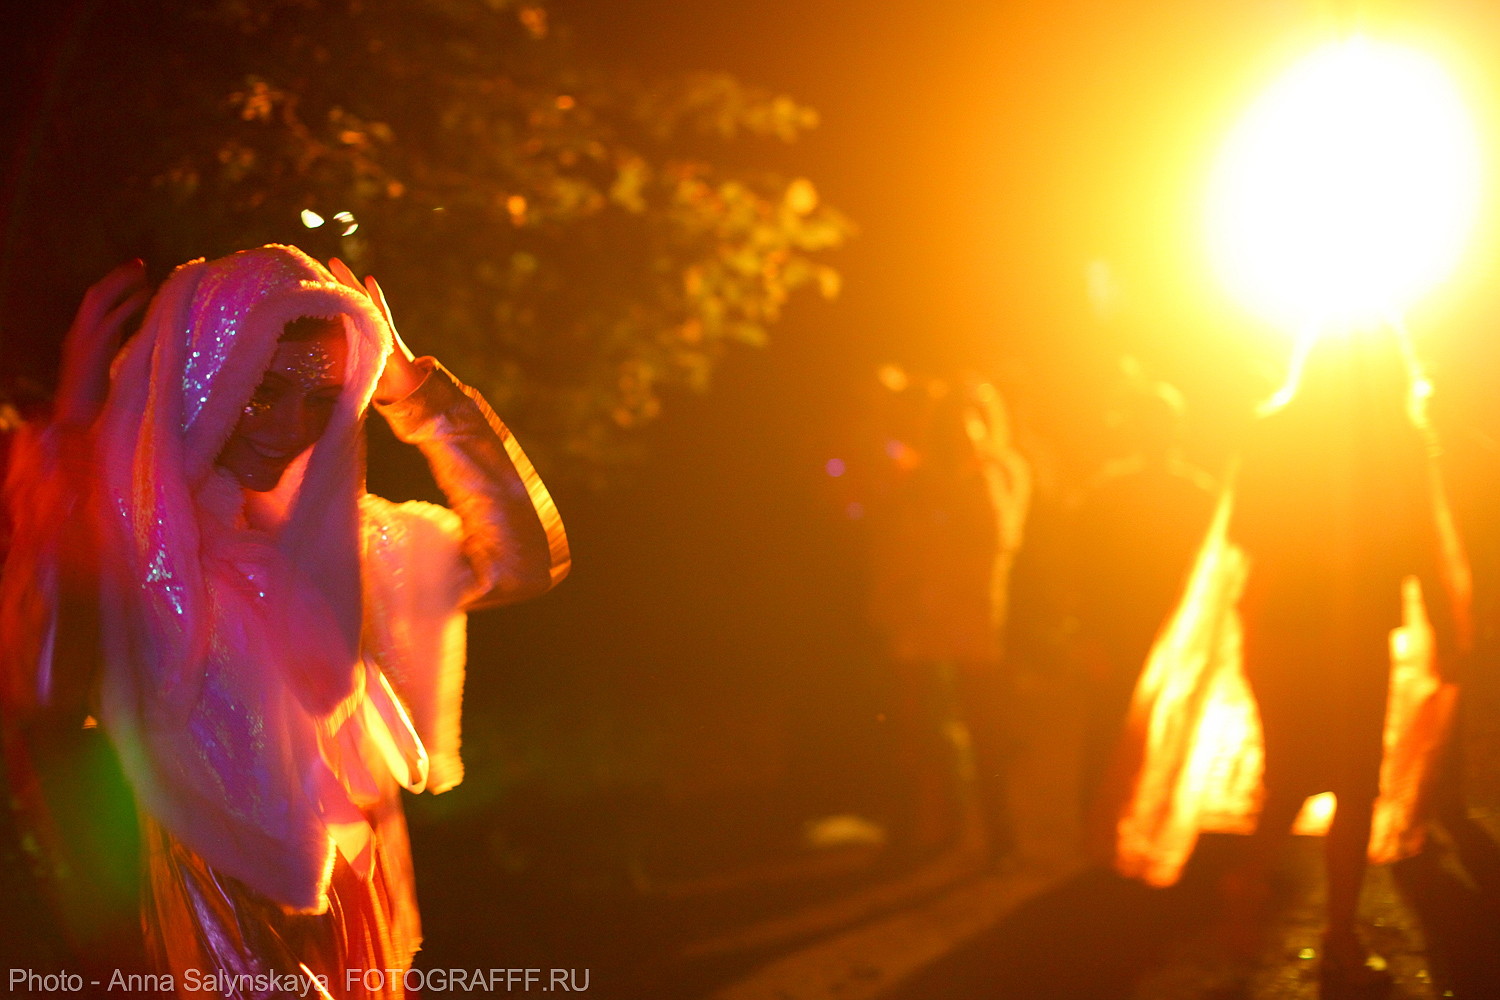 IMG_5571_AnnaSalynskaya_1 - Midsummer Night's Dream 2017